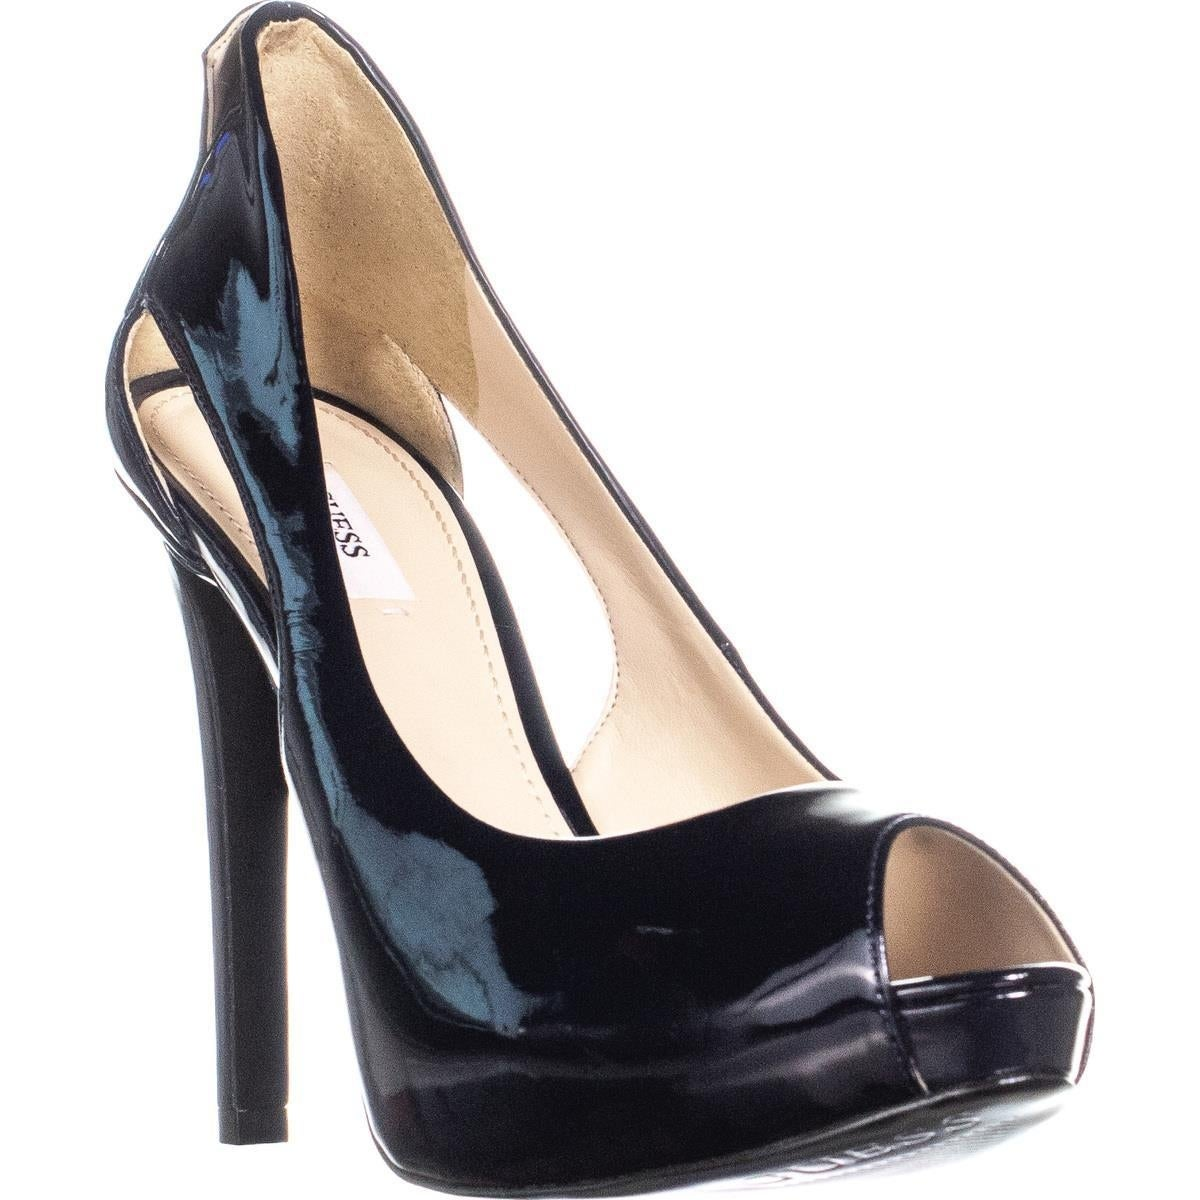 Black Patent Leather Guess Peep Toe Heels